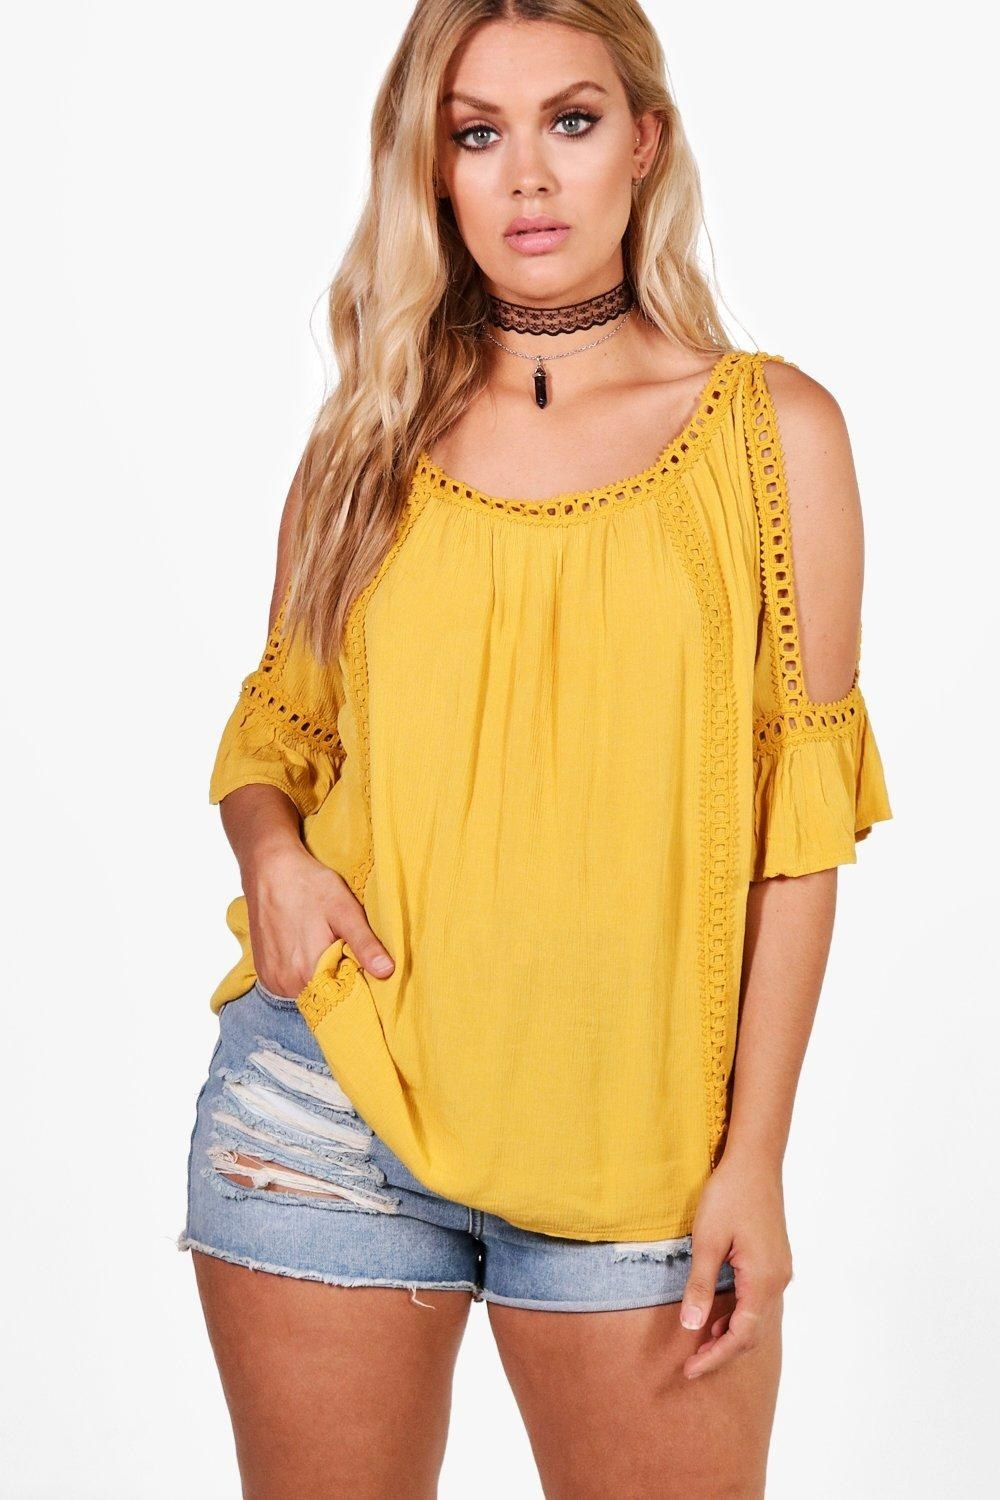 Price: $21 (originally $36, available in three colors sizes 12–20)